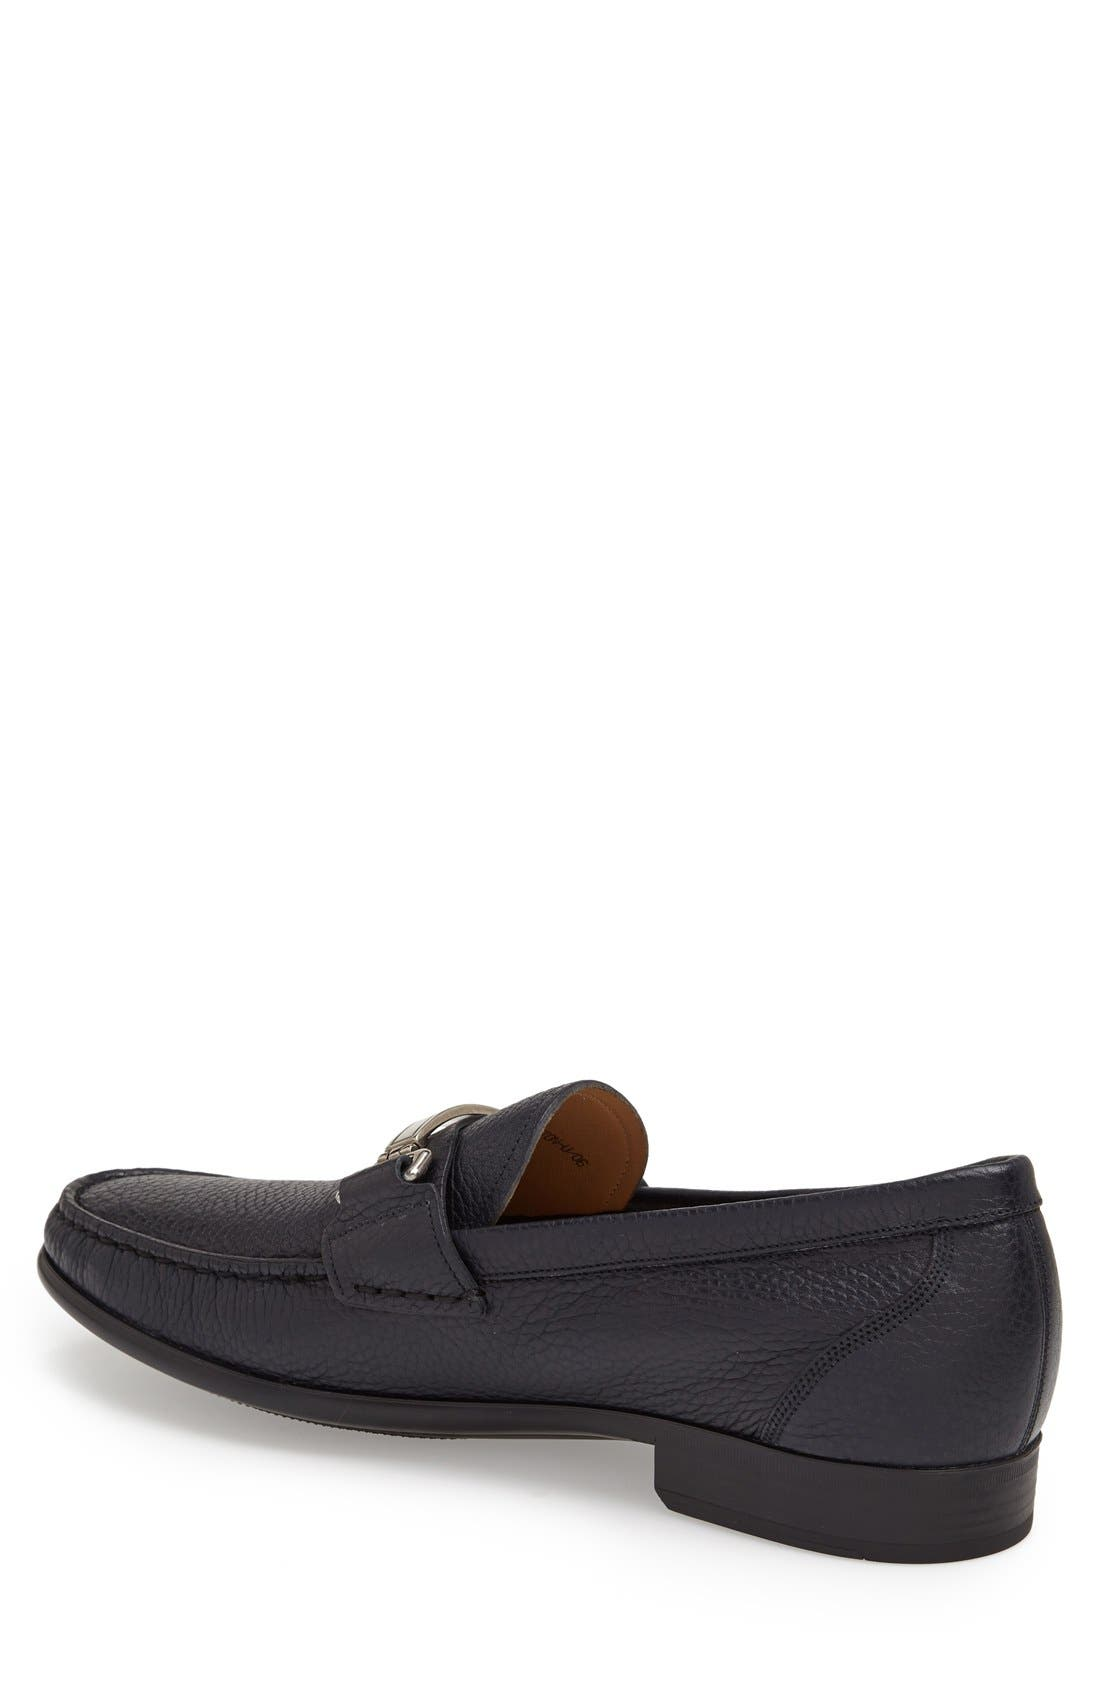 Alternate Image 2  - Bally 'Corton' Bit Loafer (Men)